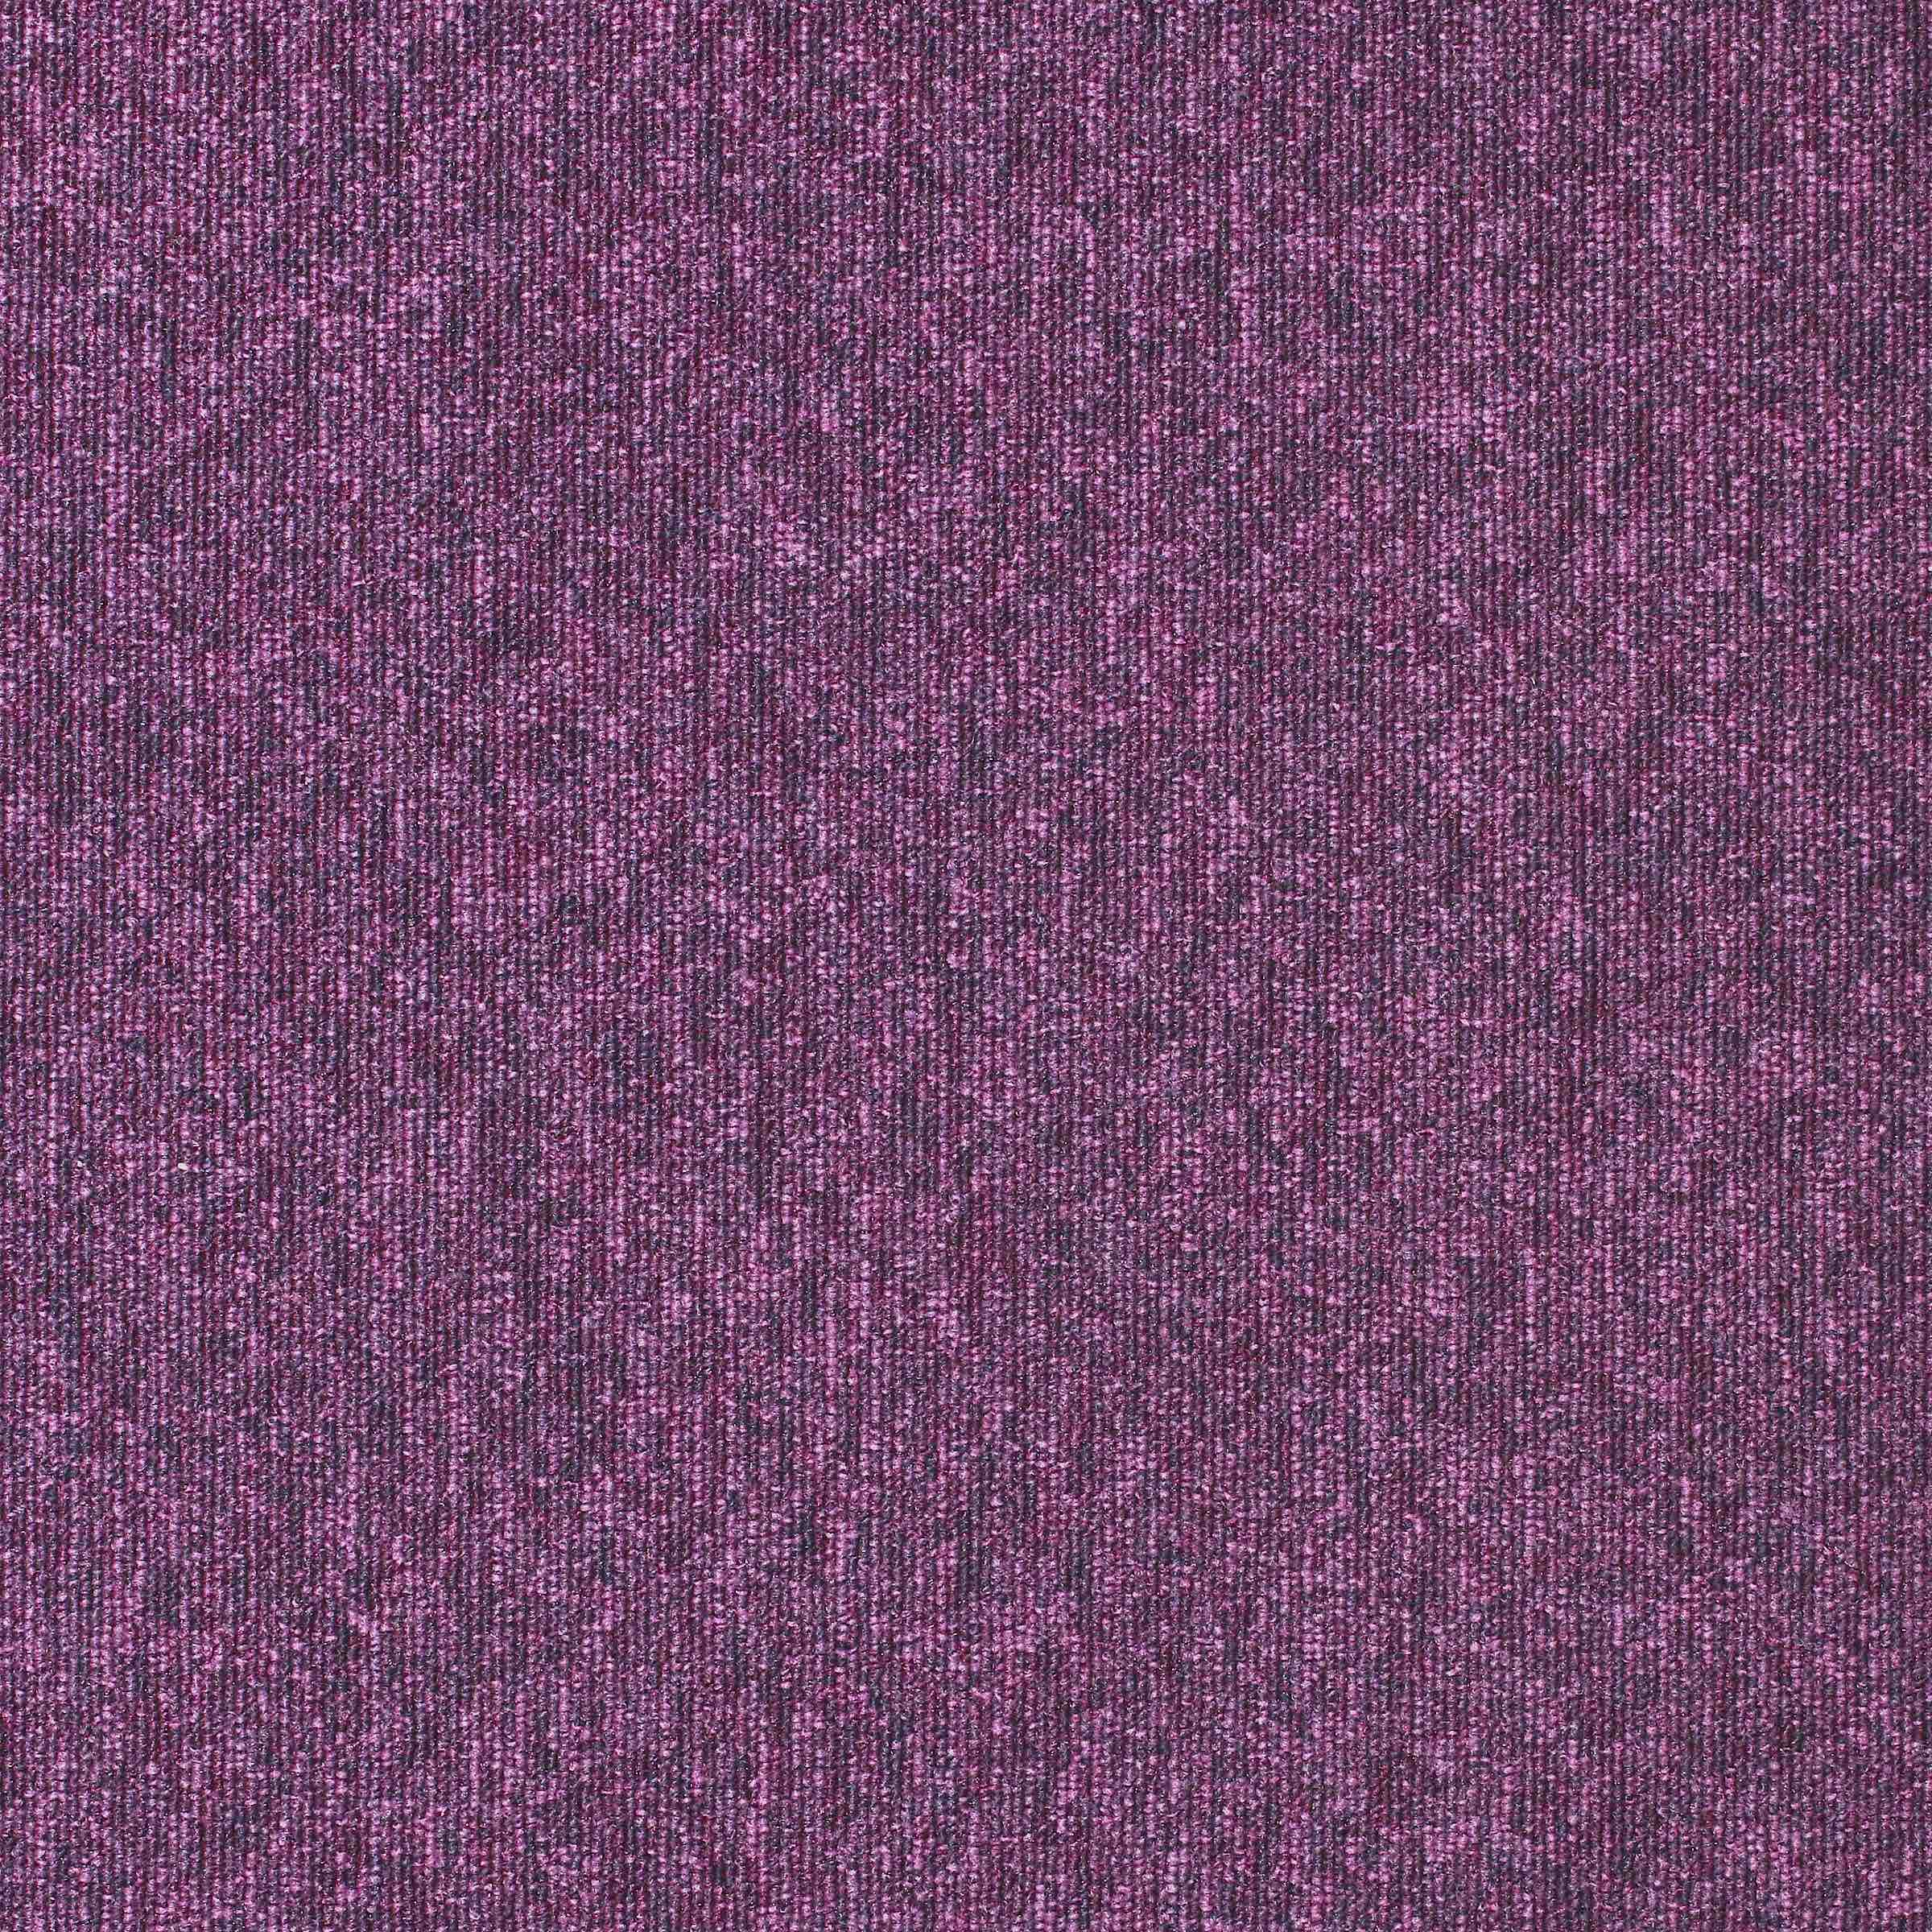 Diversity | Purple Rain, 750 | Paragon Carpet Tiles | Commercial Carpet Tiles